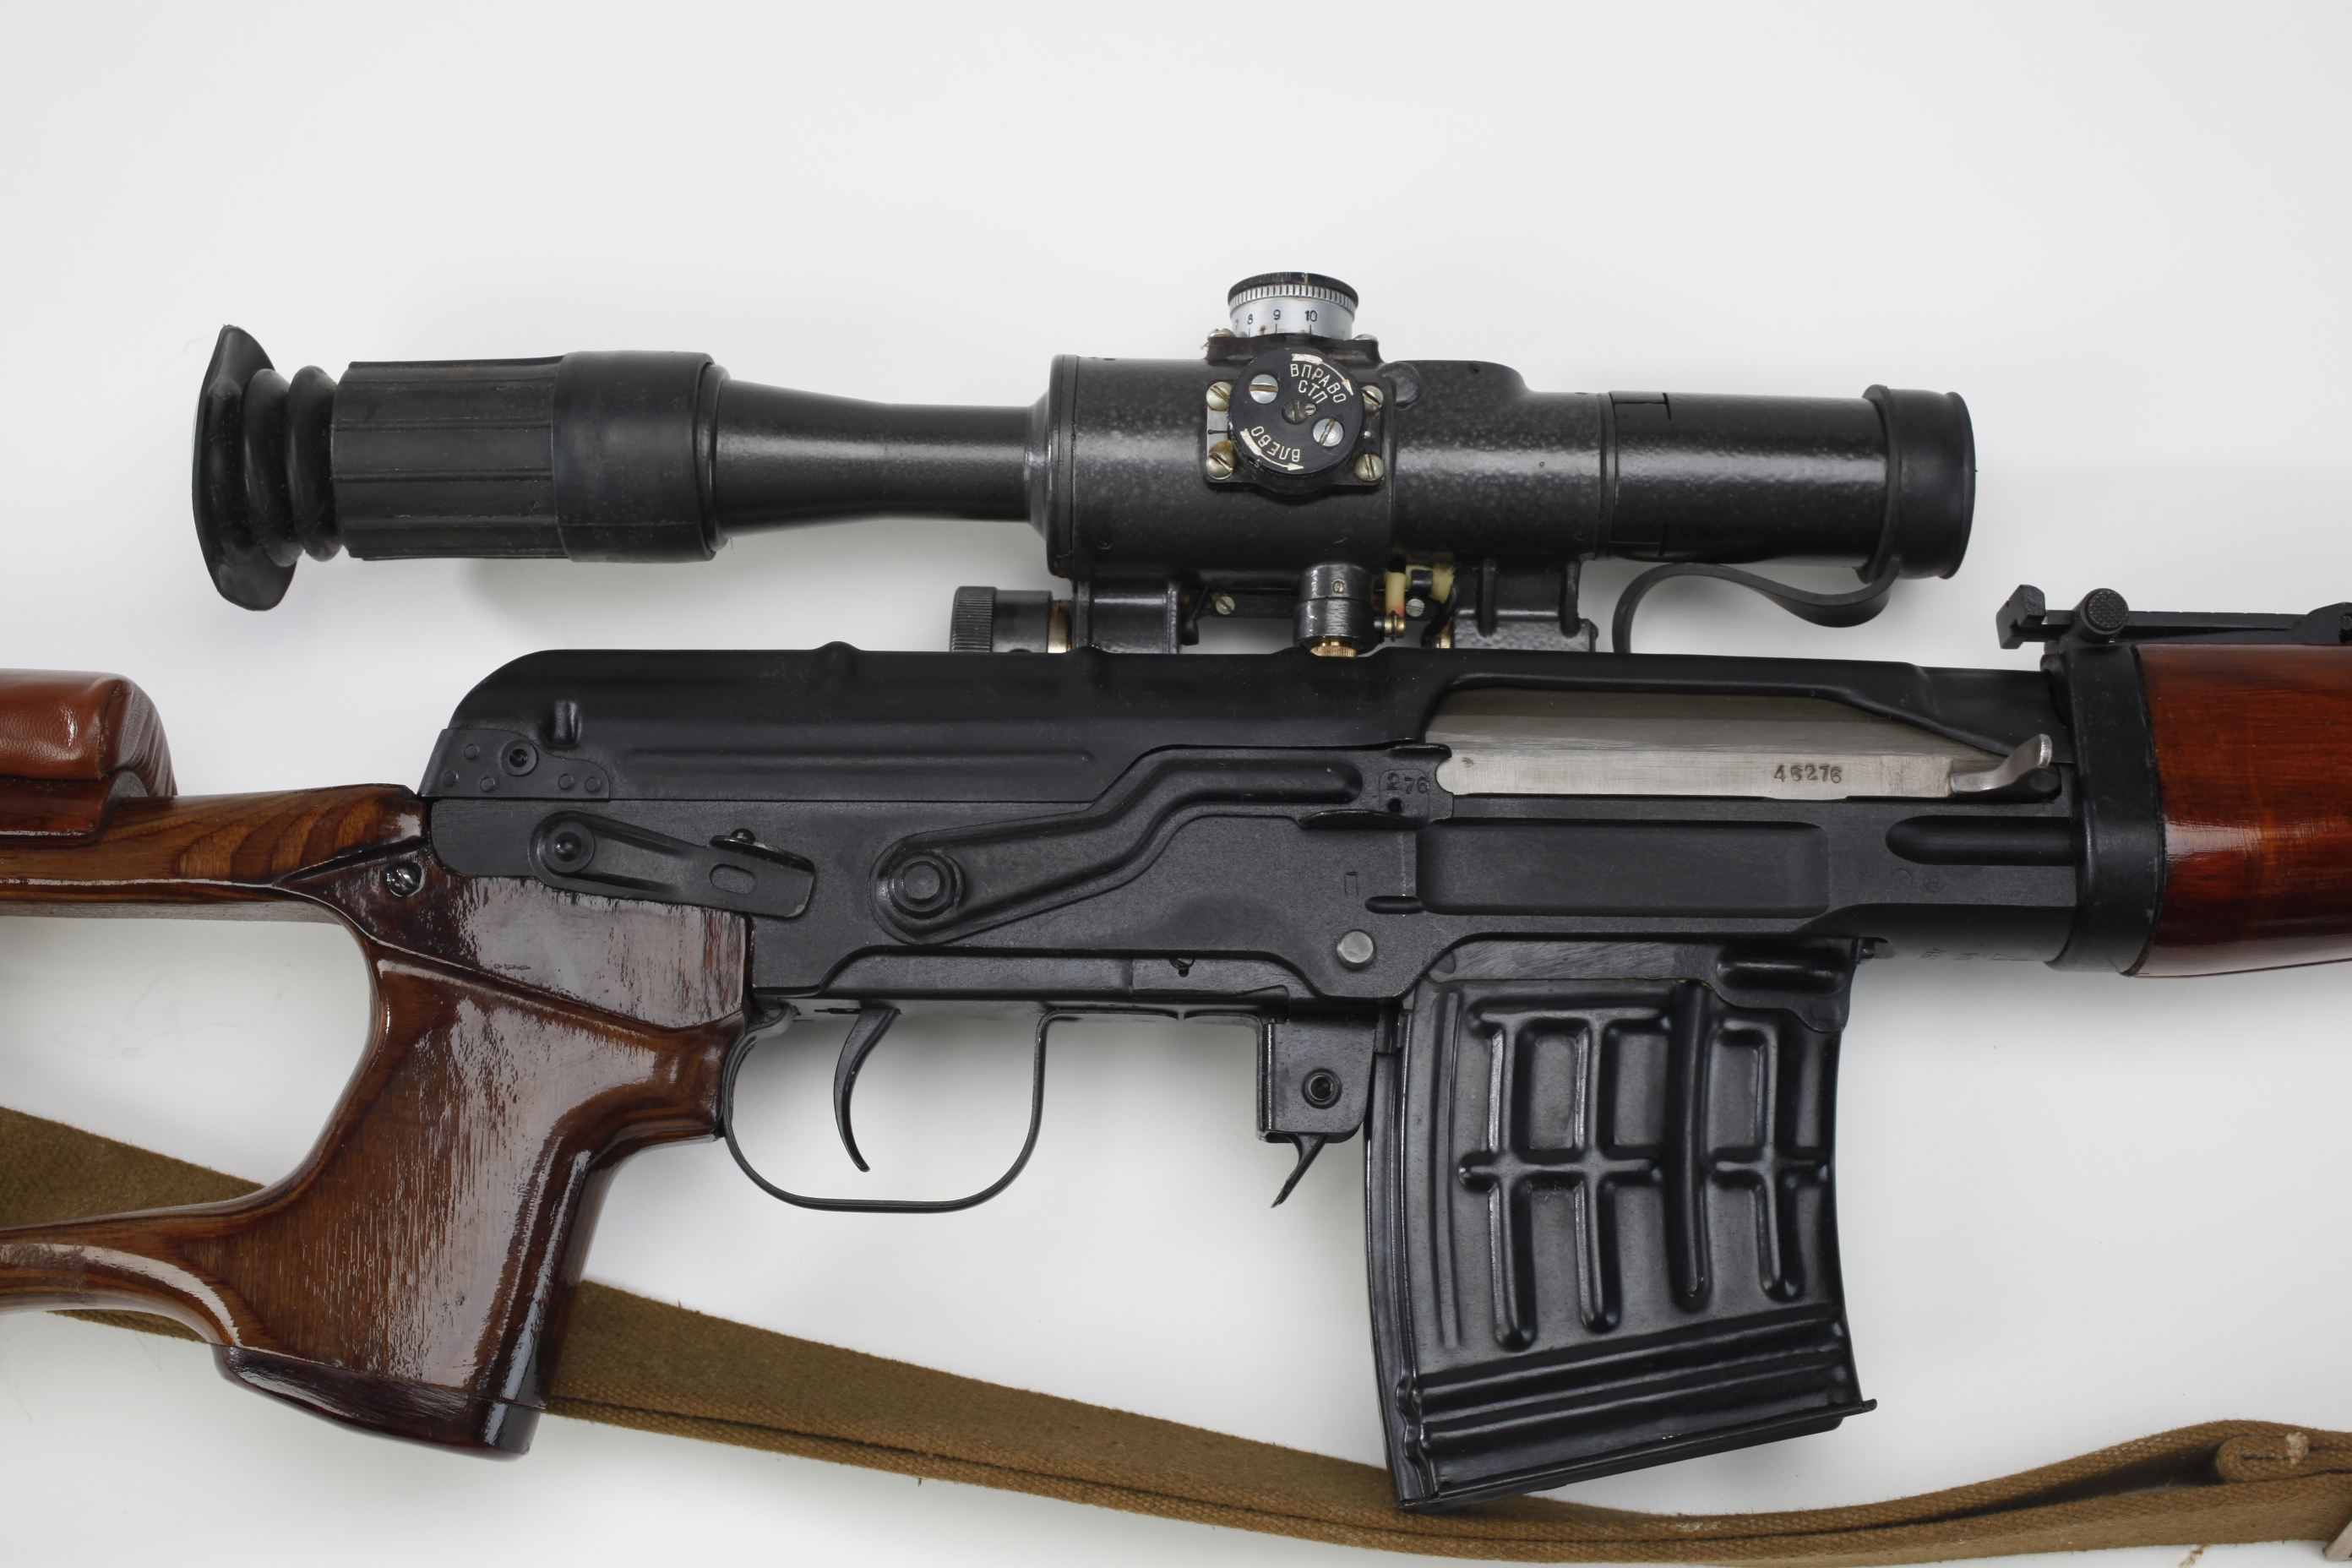 Russian SVD Dragunov Sniper rifle